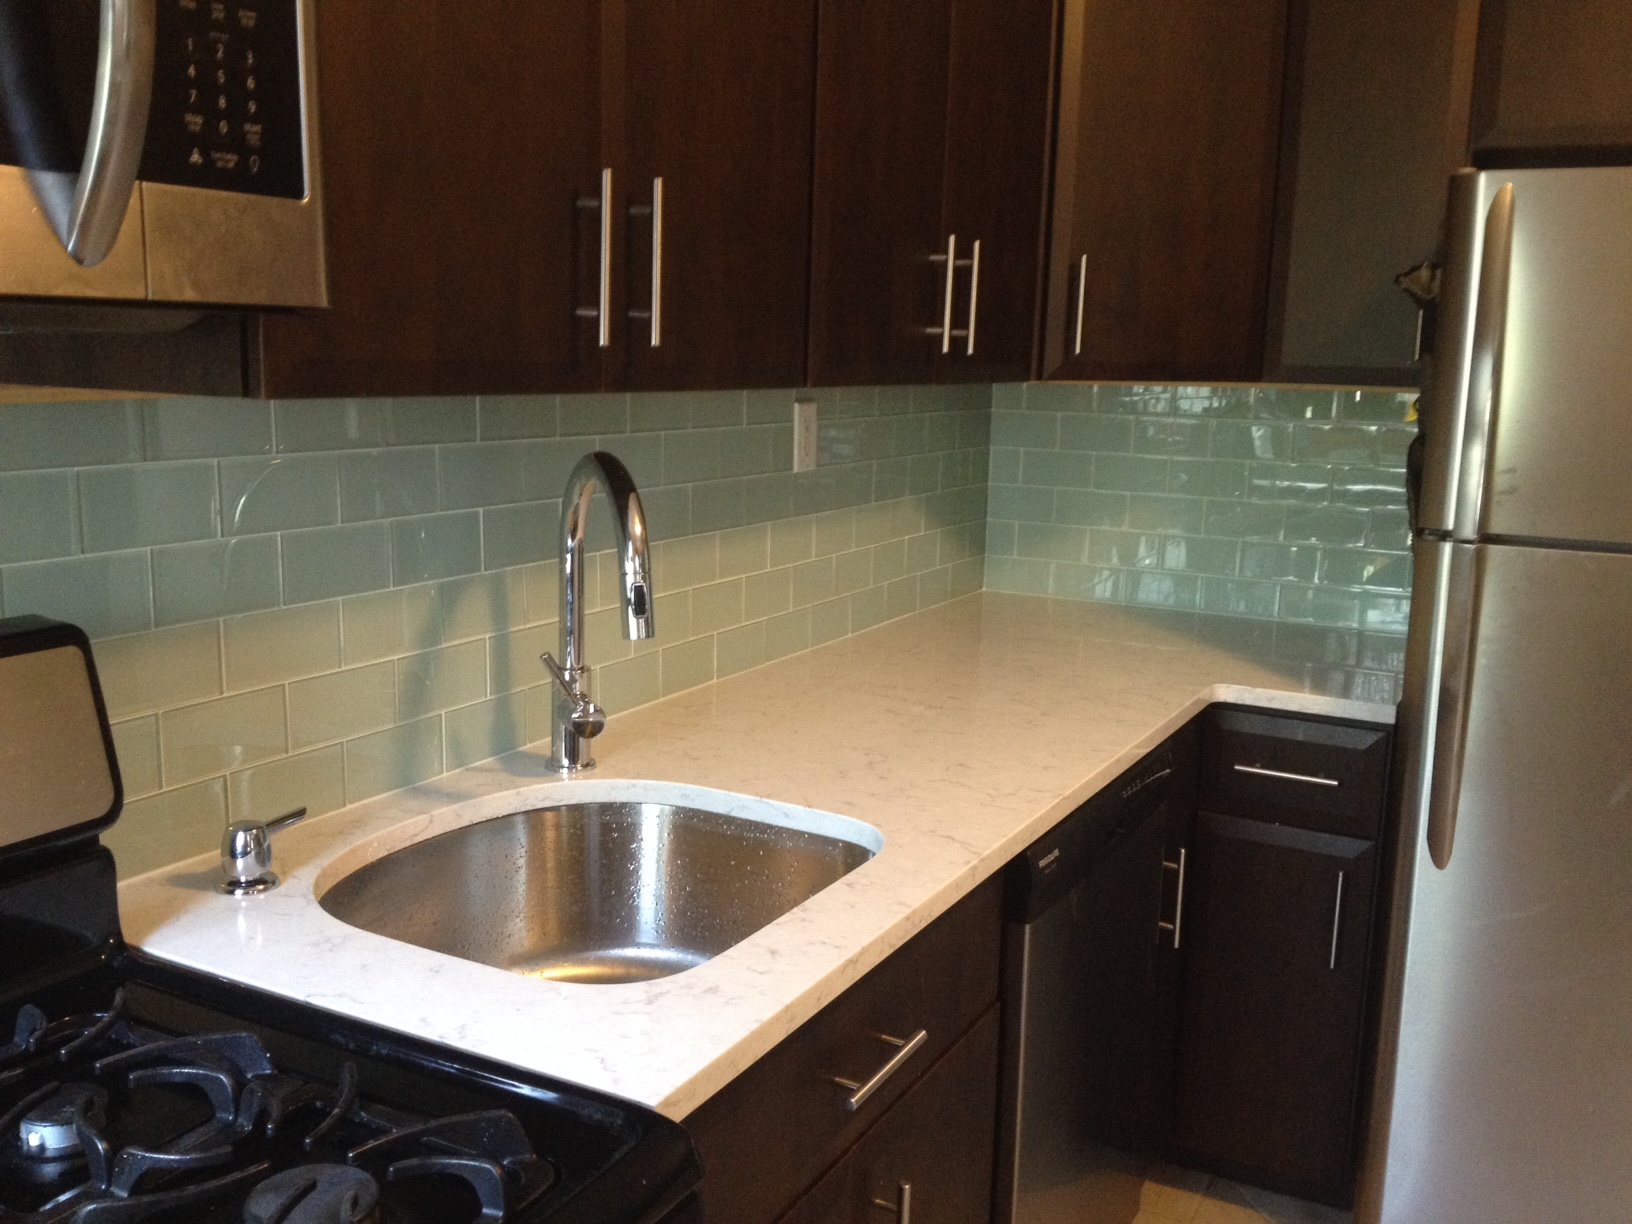 Kitchen Renovation Project Testimonials from Our Customers | Home Art Tile Kitchen and Bath